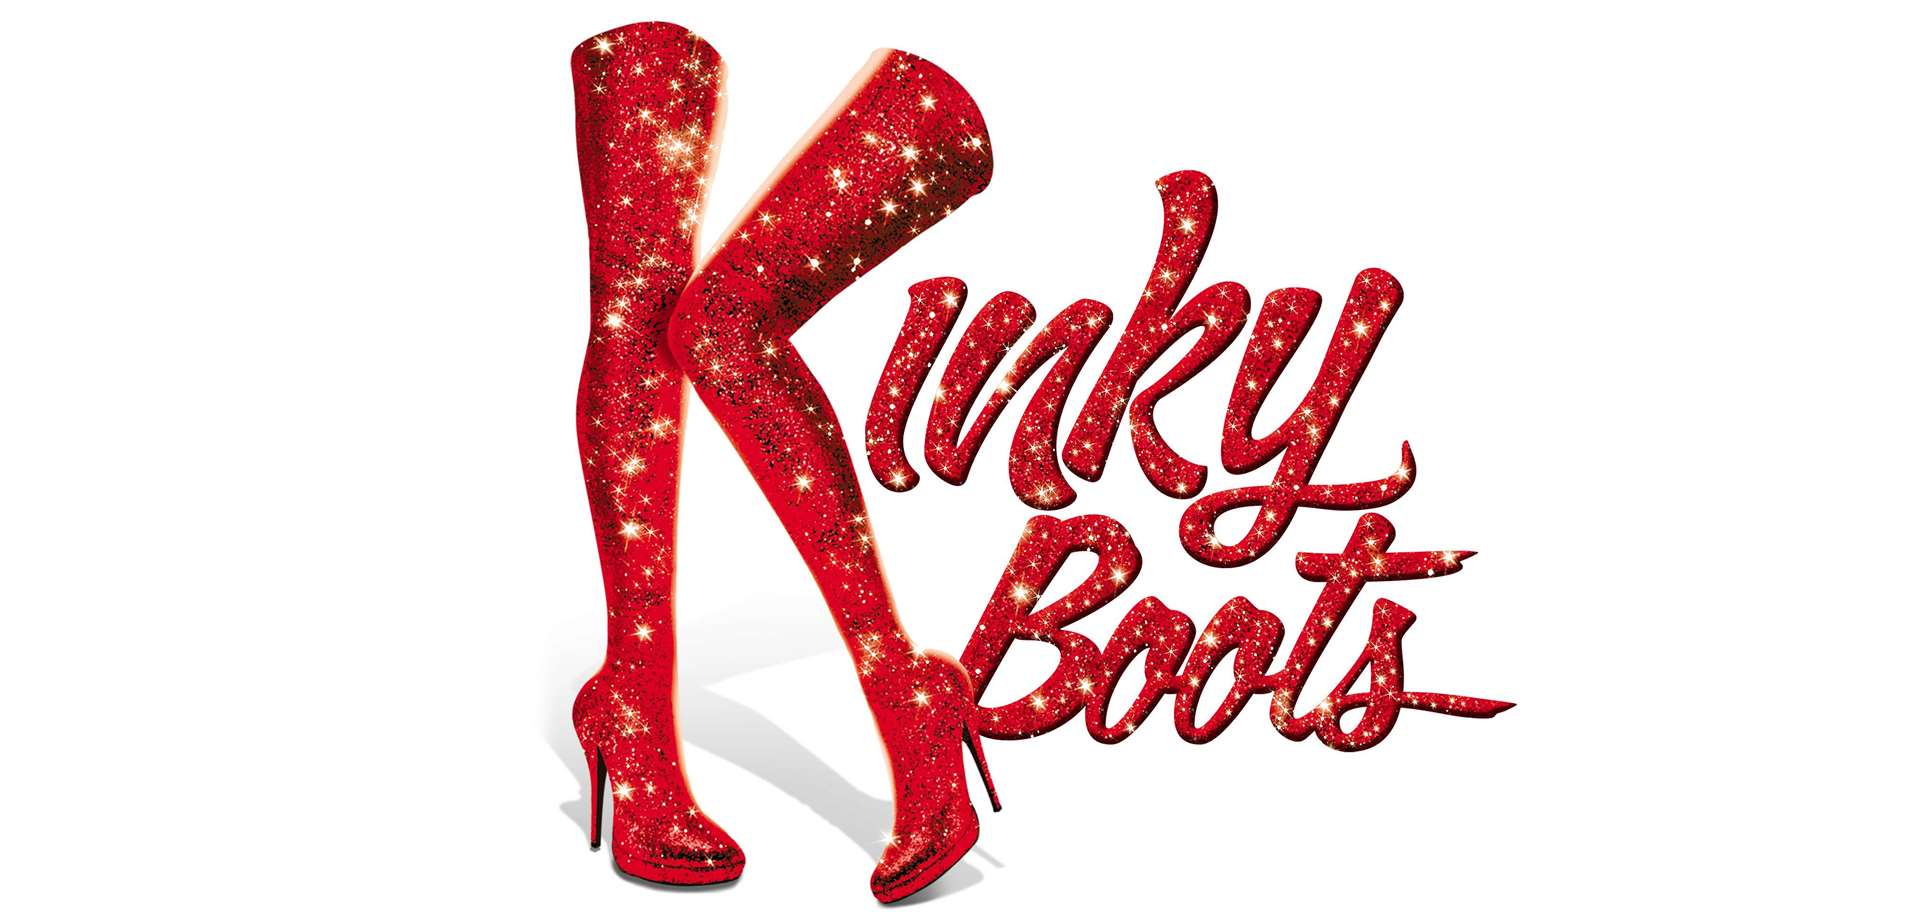 Kinky Boots the musical will open at the Marlowe Theatre